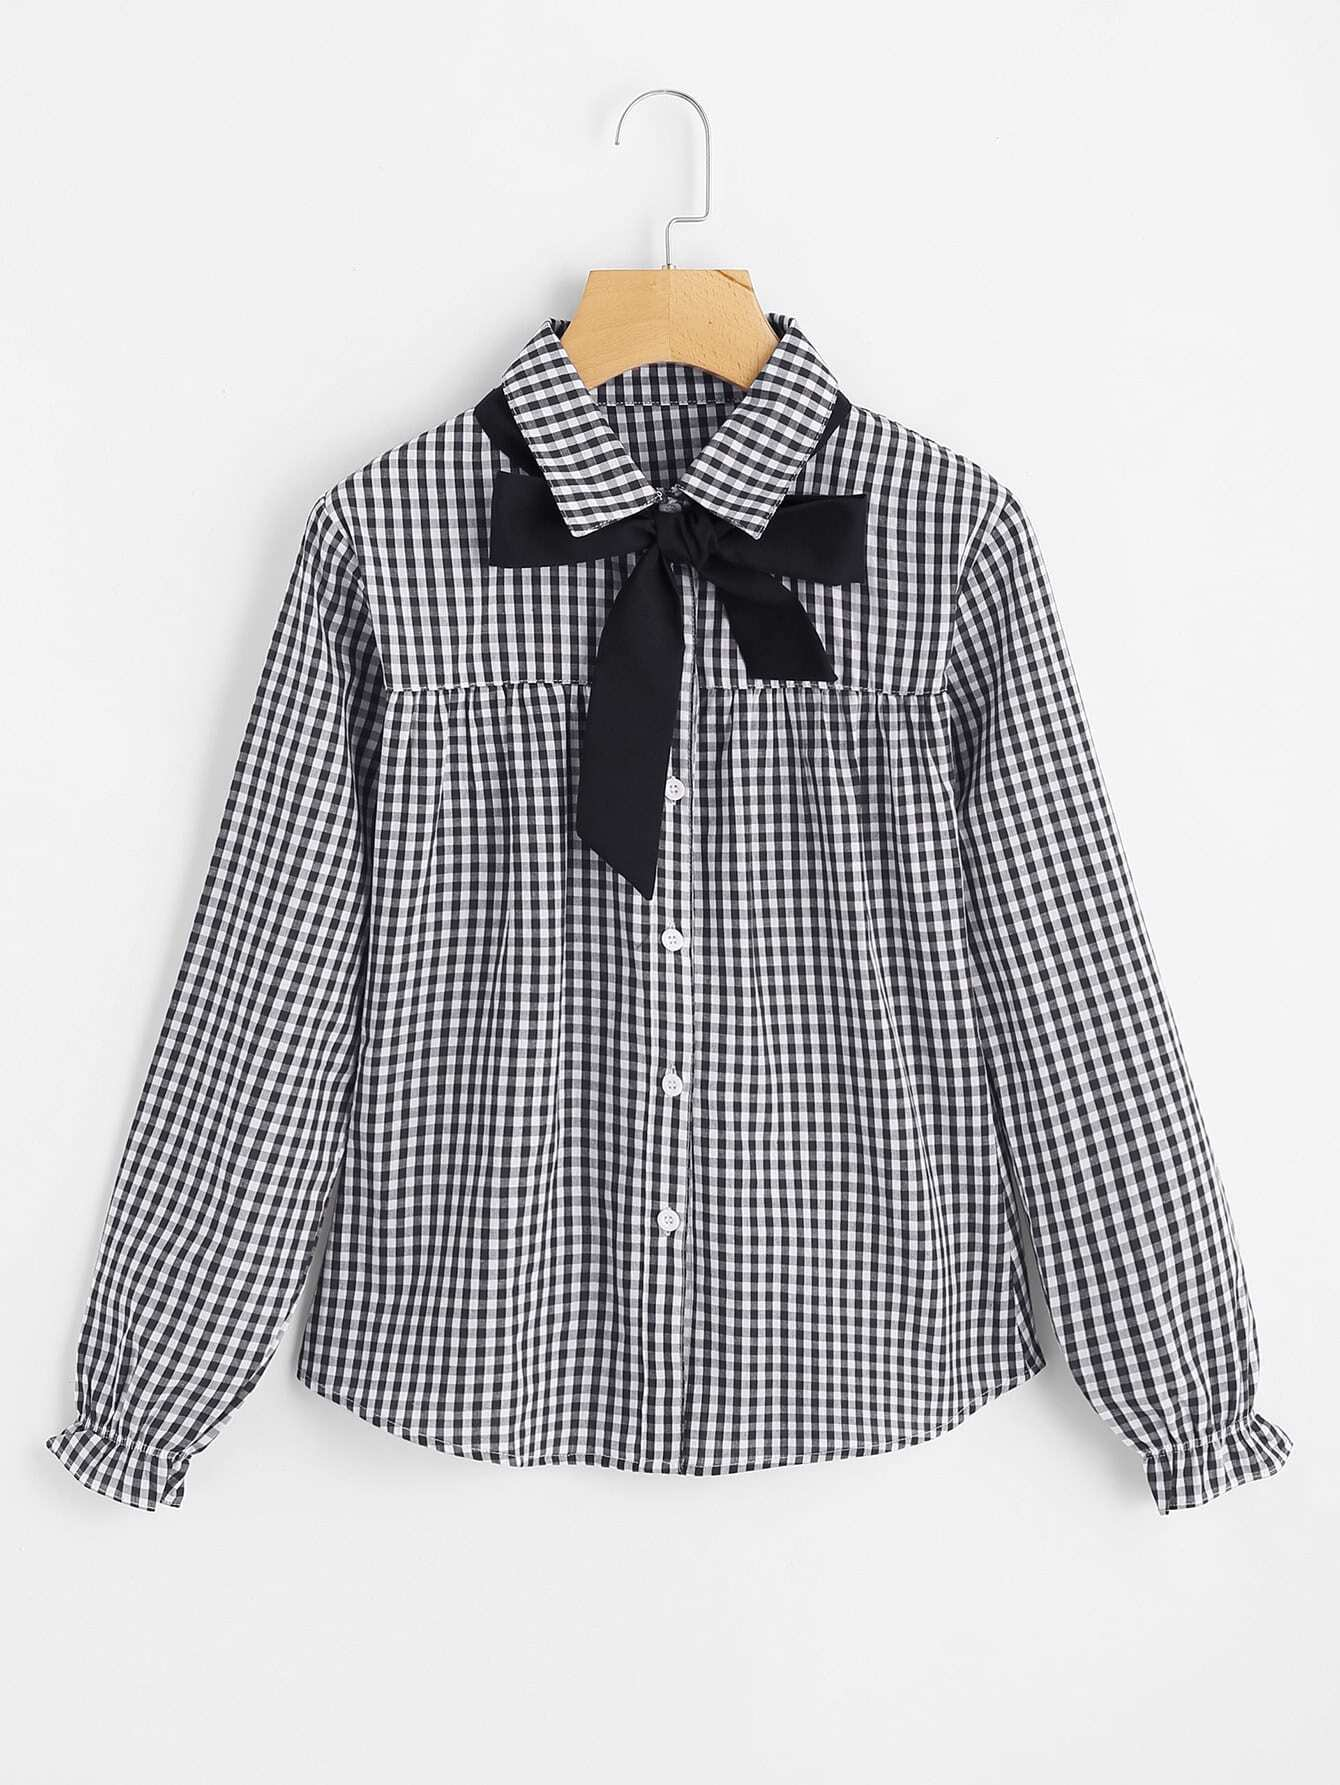 Contrast Bow Tie Gingham Blouse contrast embroidered mesh yoke bow tie striped blouse